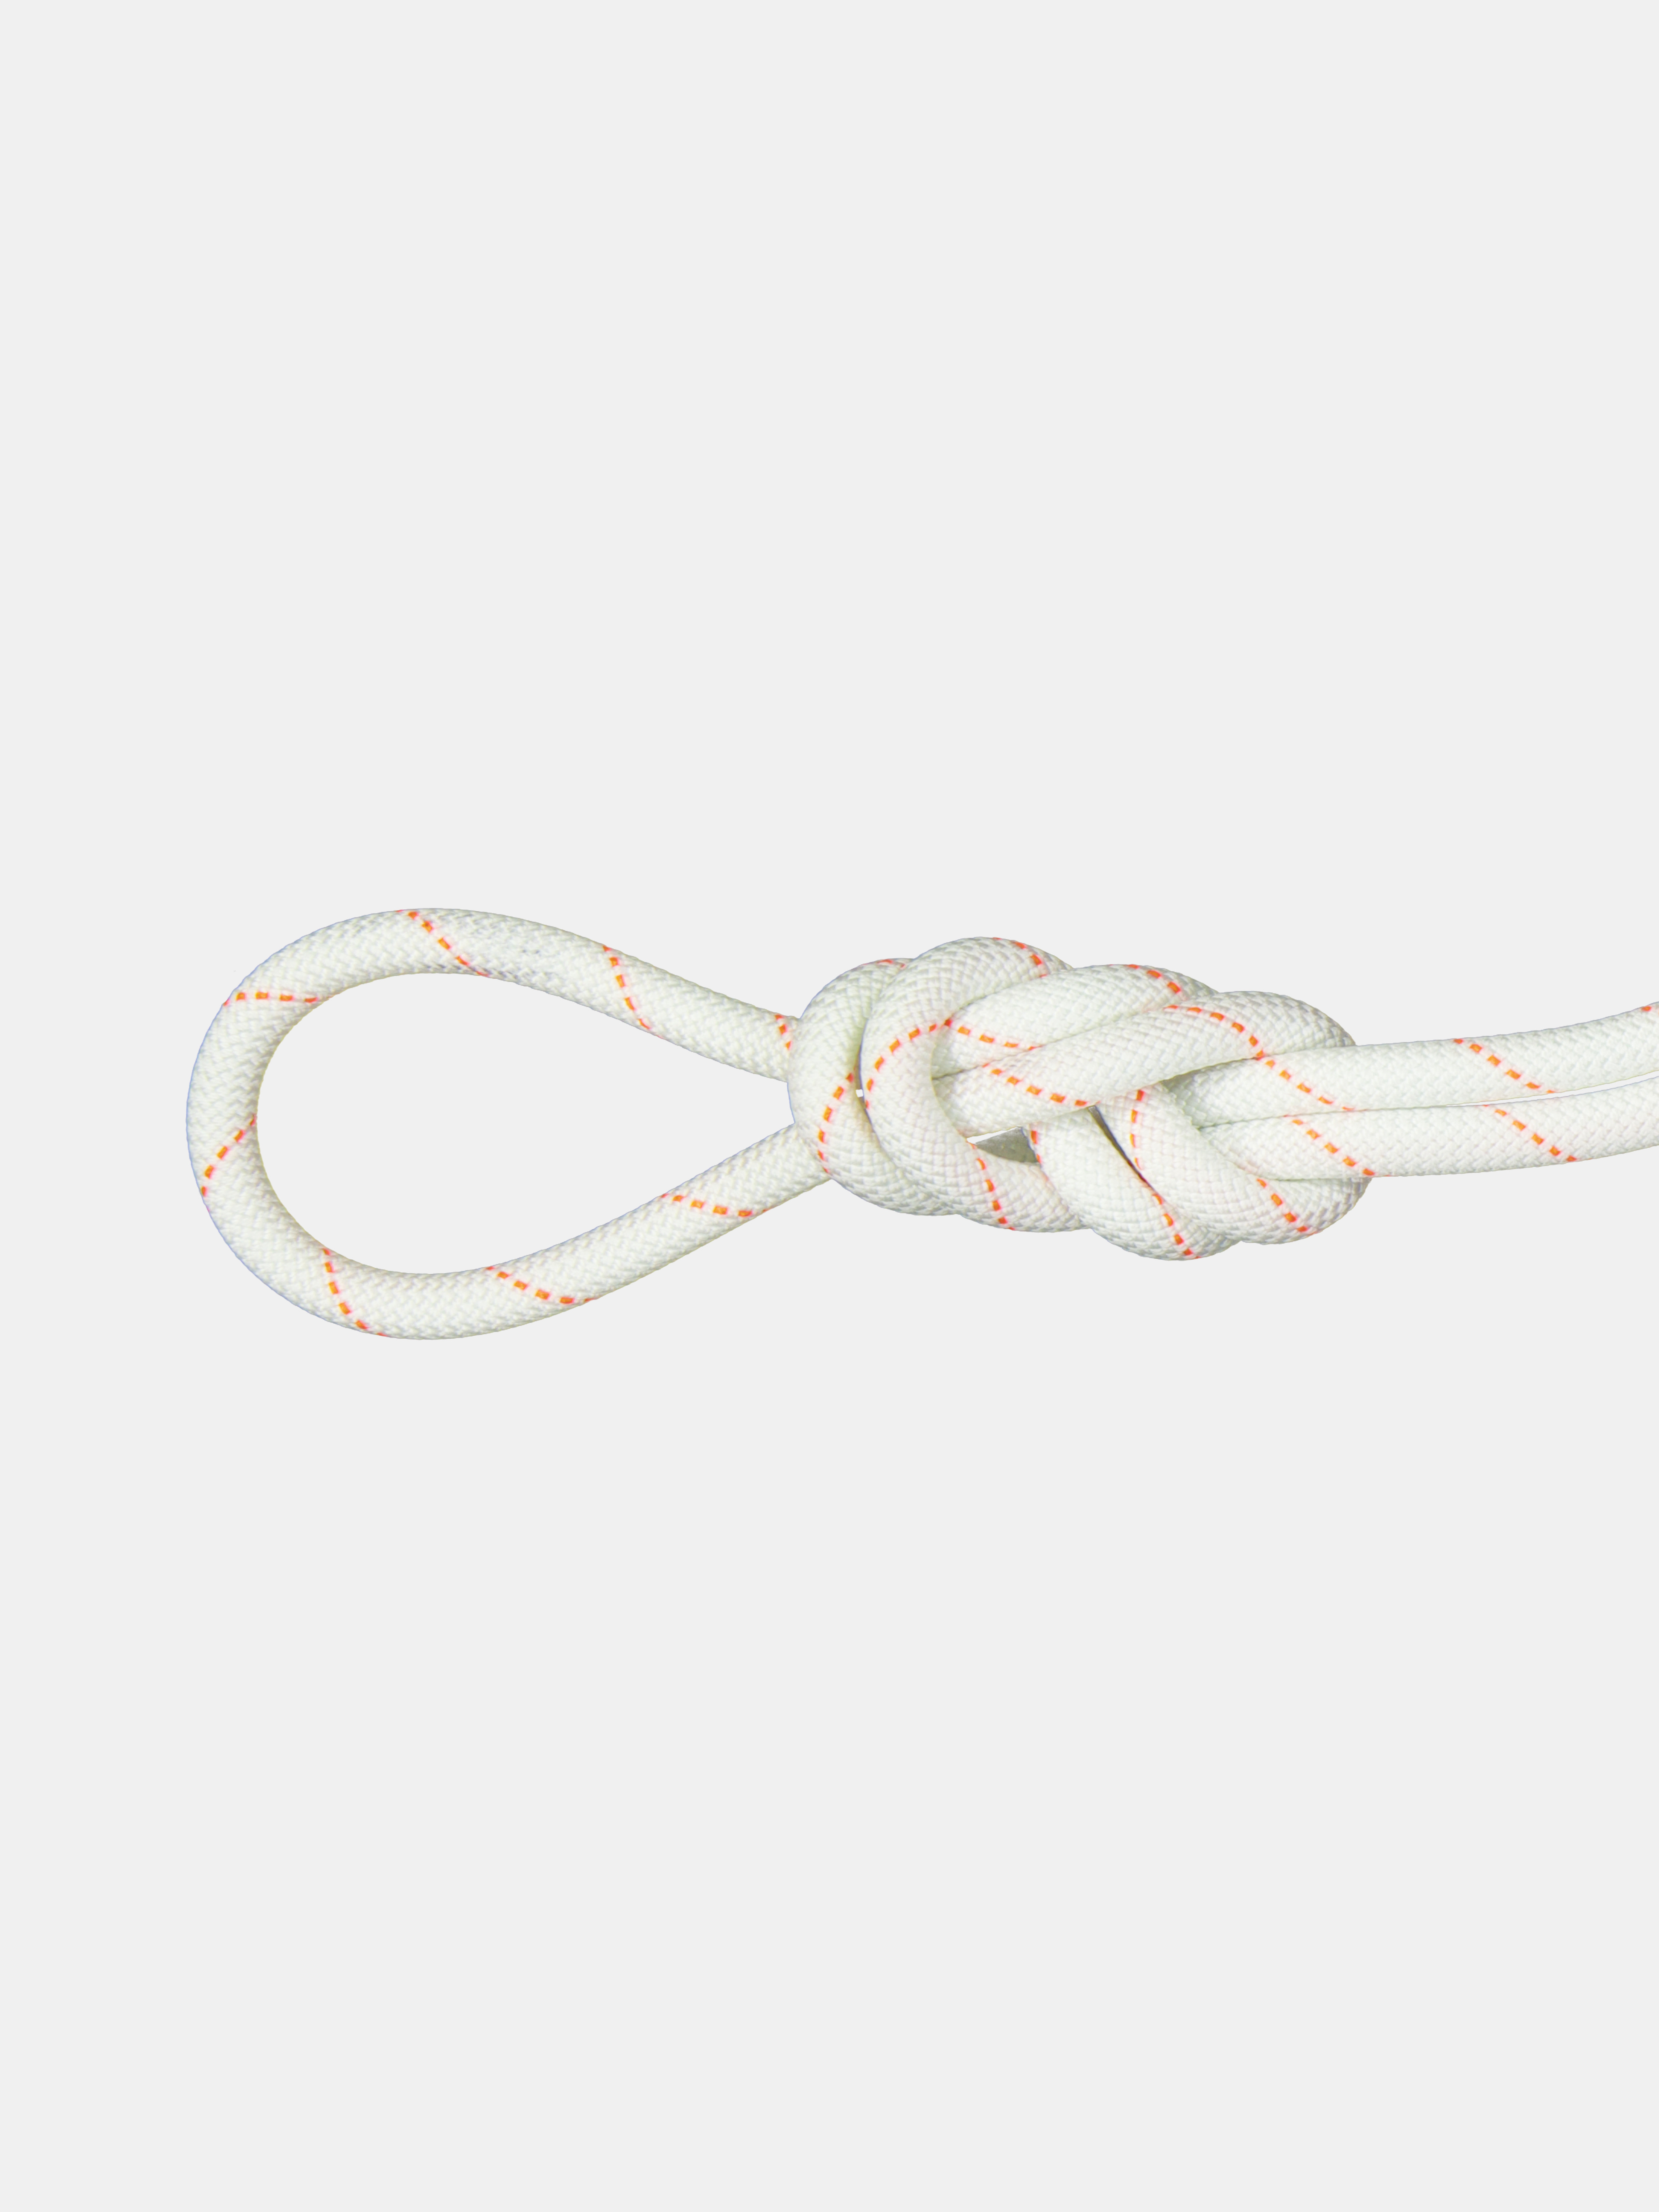 9.9 Gym Workhorse Dry Rope image